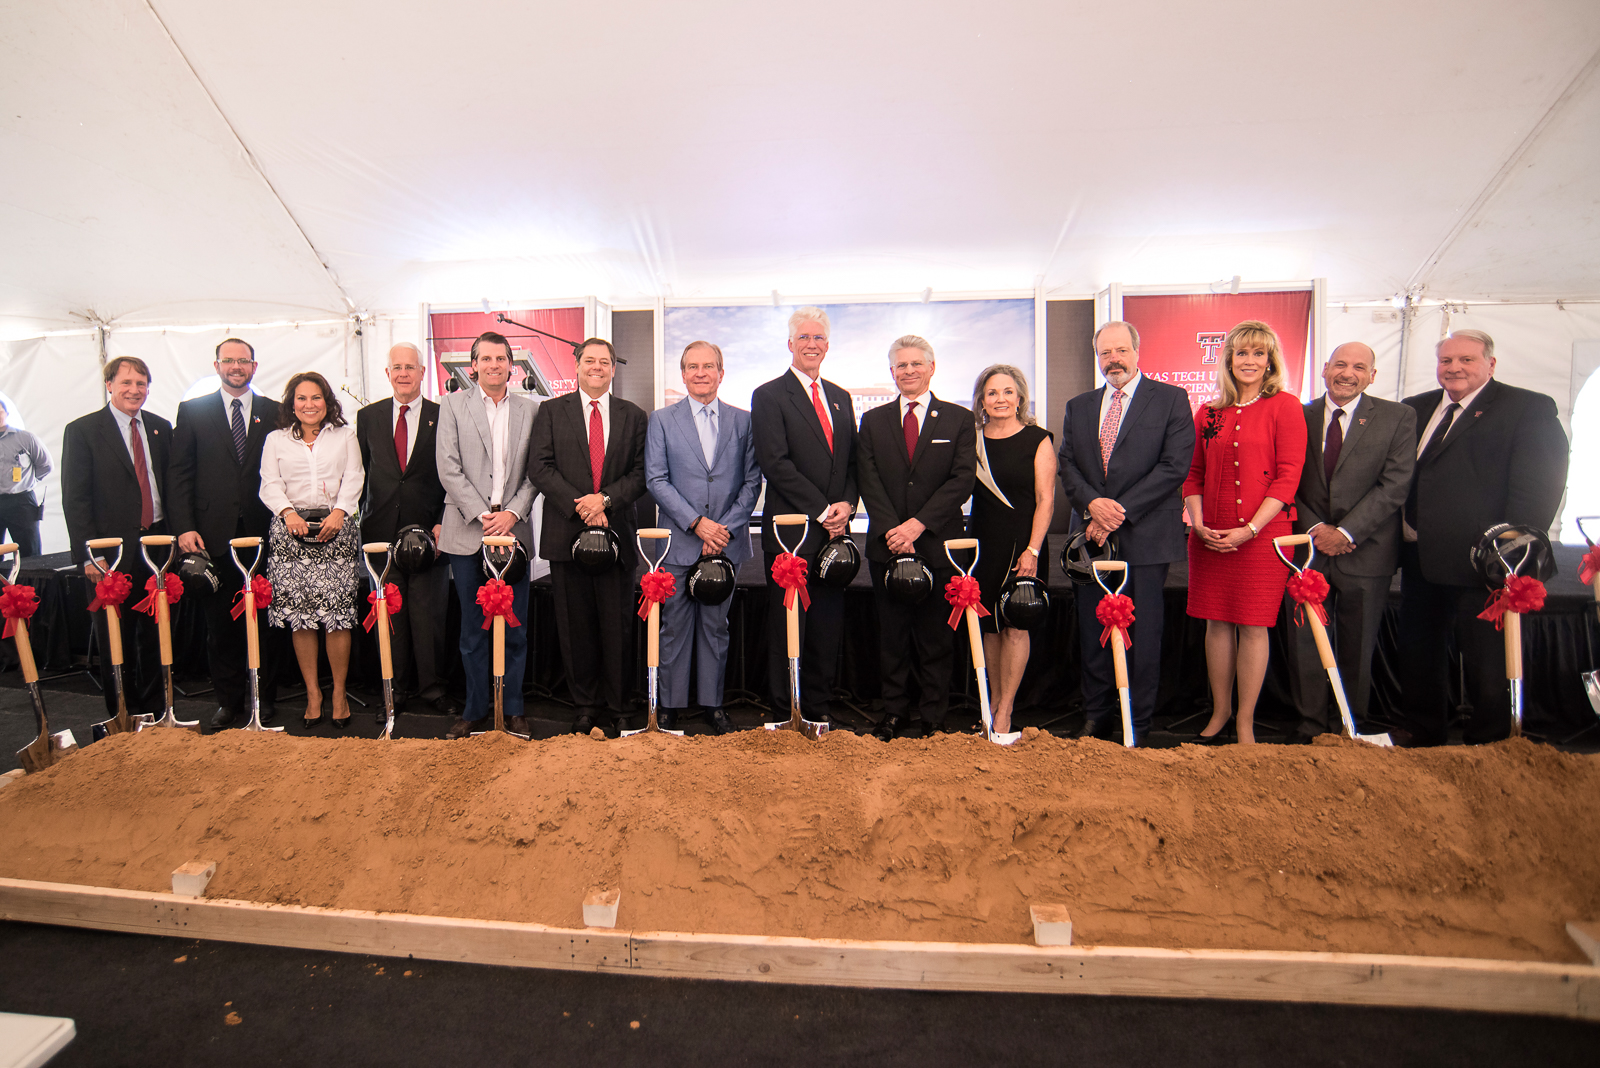 TTUHSC El Paso Breaks Ground on $84.4 Million Medical Sciences Building